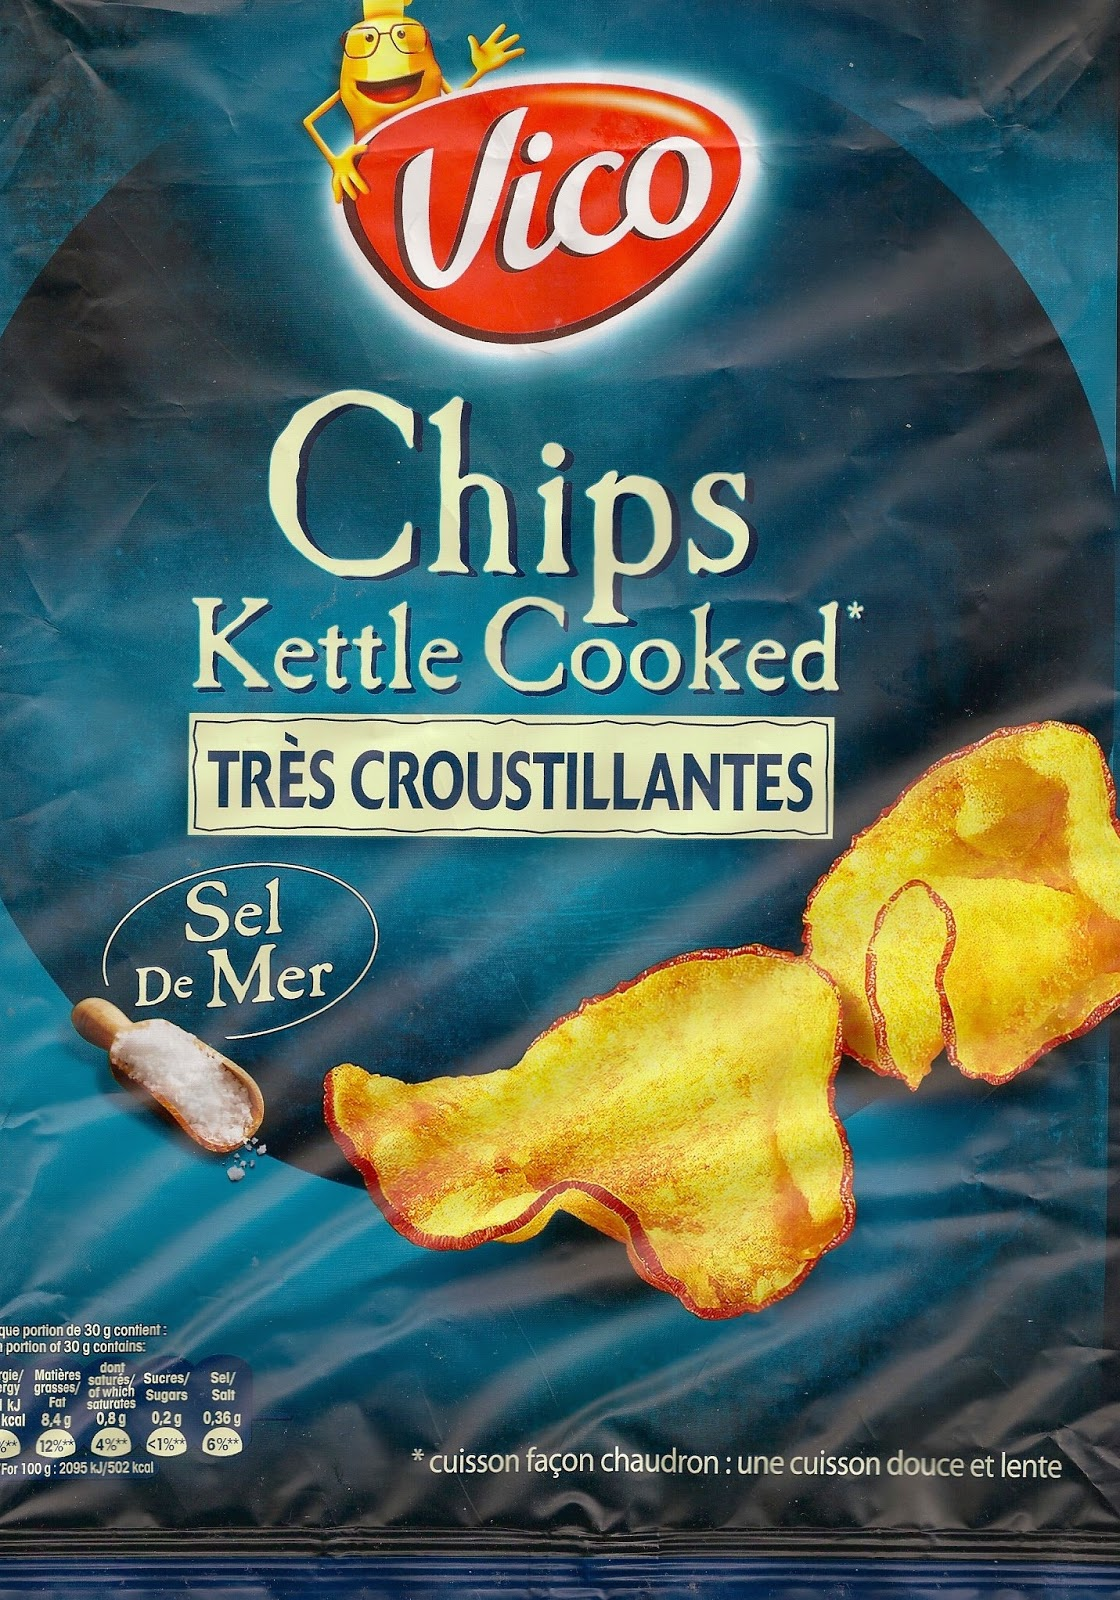 Cheeseburger Crisps & Other Stories: Vico Chips Kettle Cooked Très ...